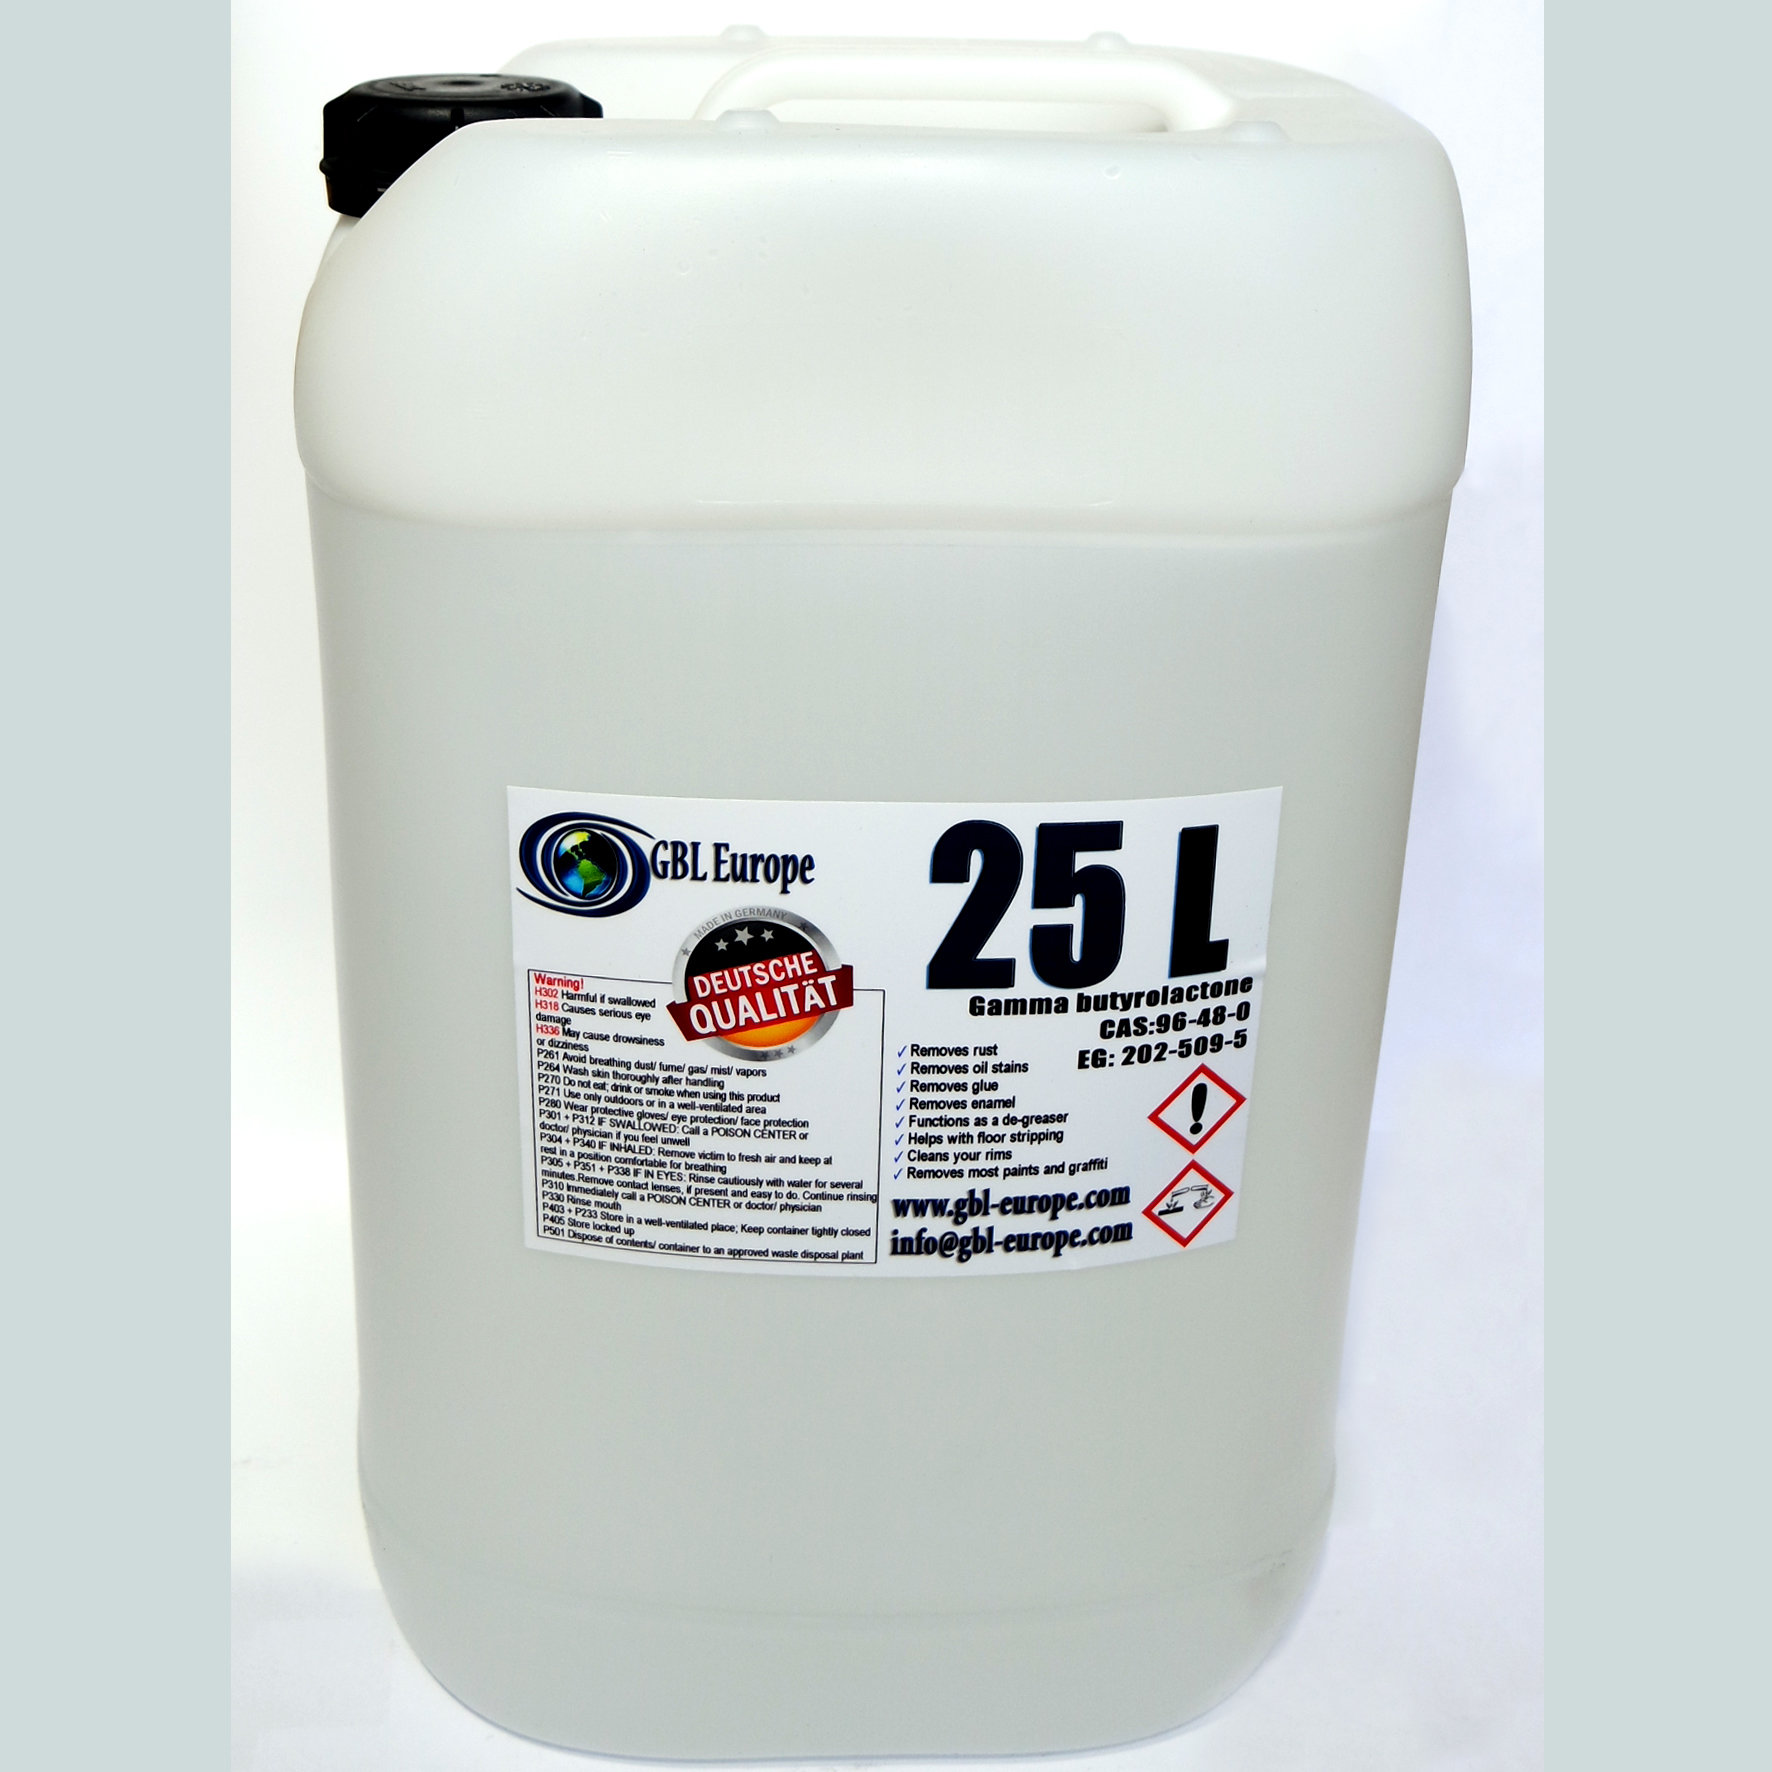 Industrial Cleaner 25.000 ml Pharma Grade German Quality Canister 00024 HS Code 29322020